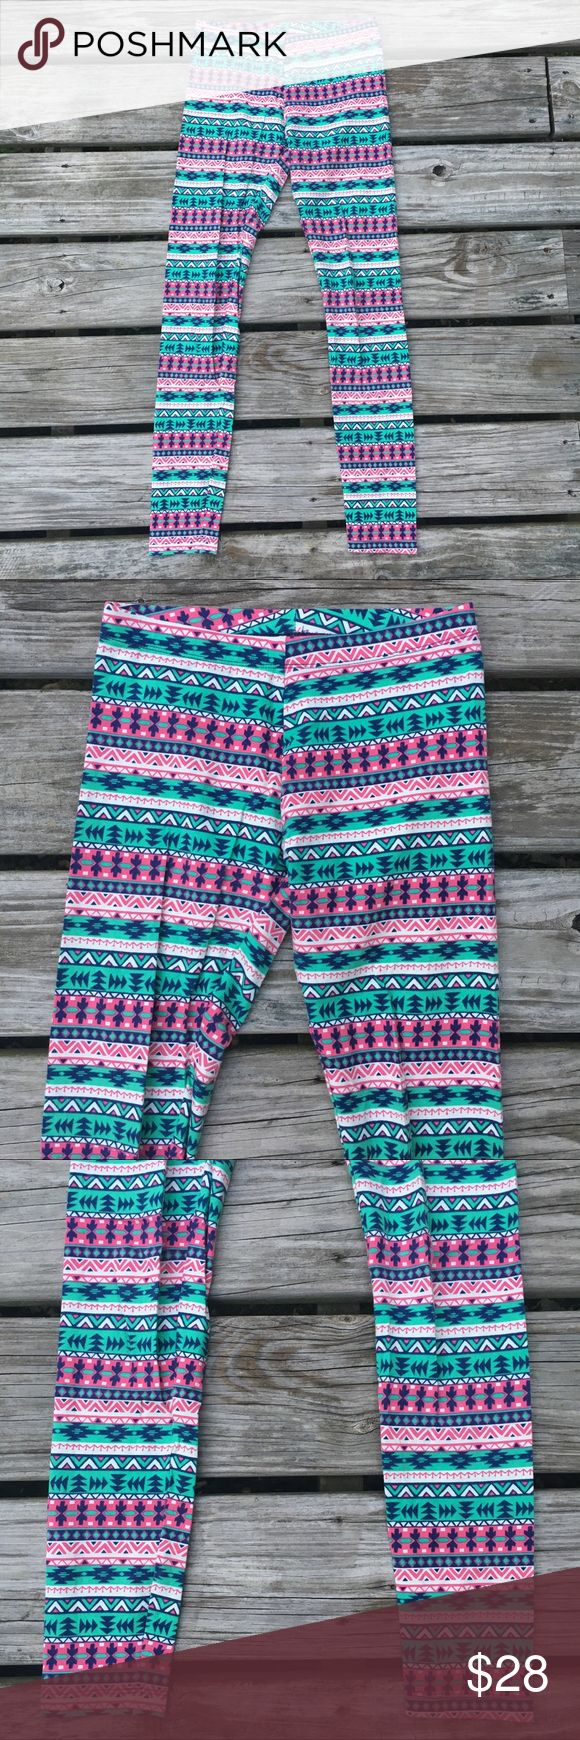 """SEXY AZTEC BOHO TRIBAL SOFT STRETCH LEGGINGS PANTS Tags - Turquoise-Mint / Very Dark Navy Blue / Pink / White Stripe Diamond Triangle Zig Zag Arrow Arrows Geometric Aztec Tribal Native Boho Trippy Groovy Psychedelic Hippie Gypsy Festival SOFT Knit Stretchy Stretch Leggings Pants Skinny Tight Snug Fitted 